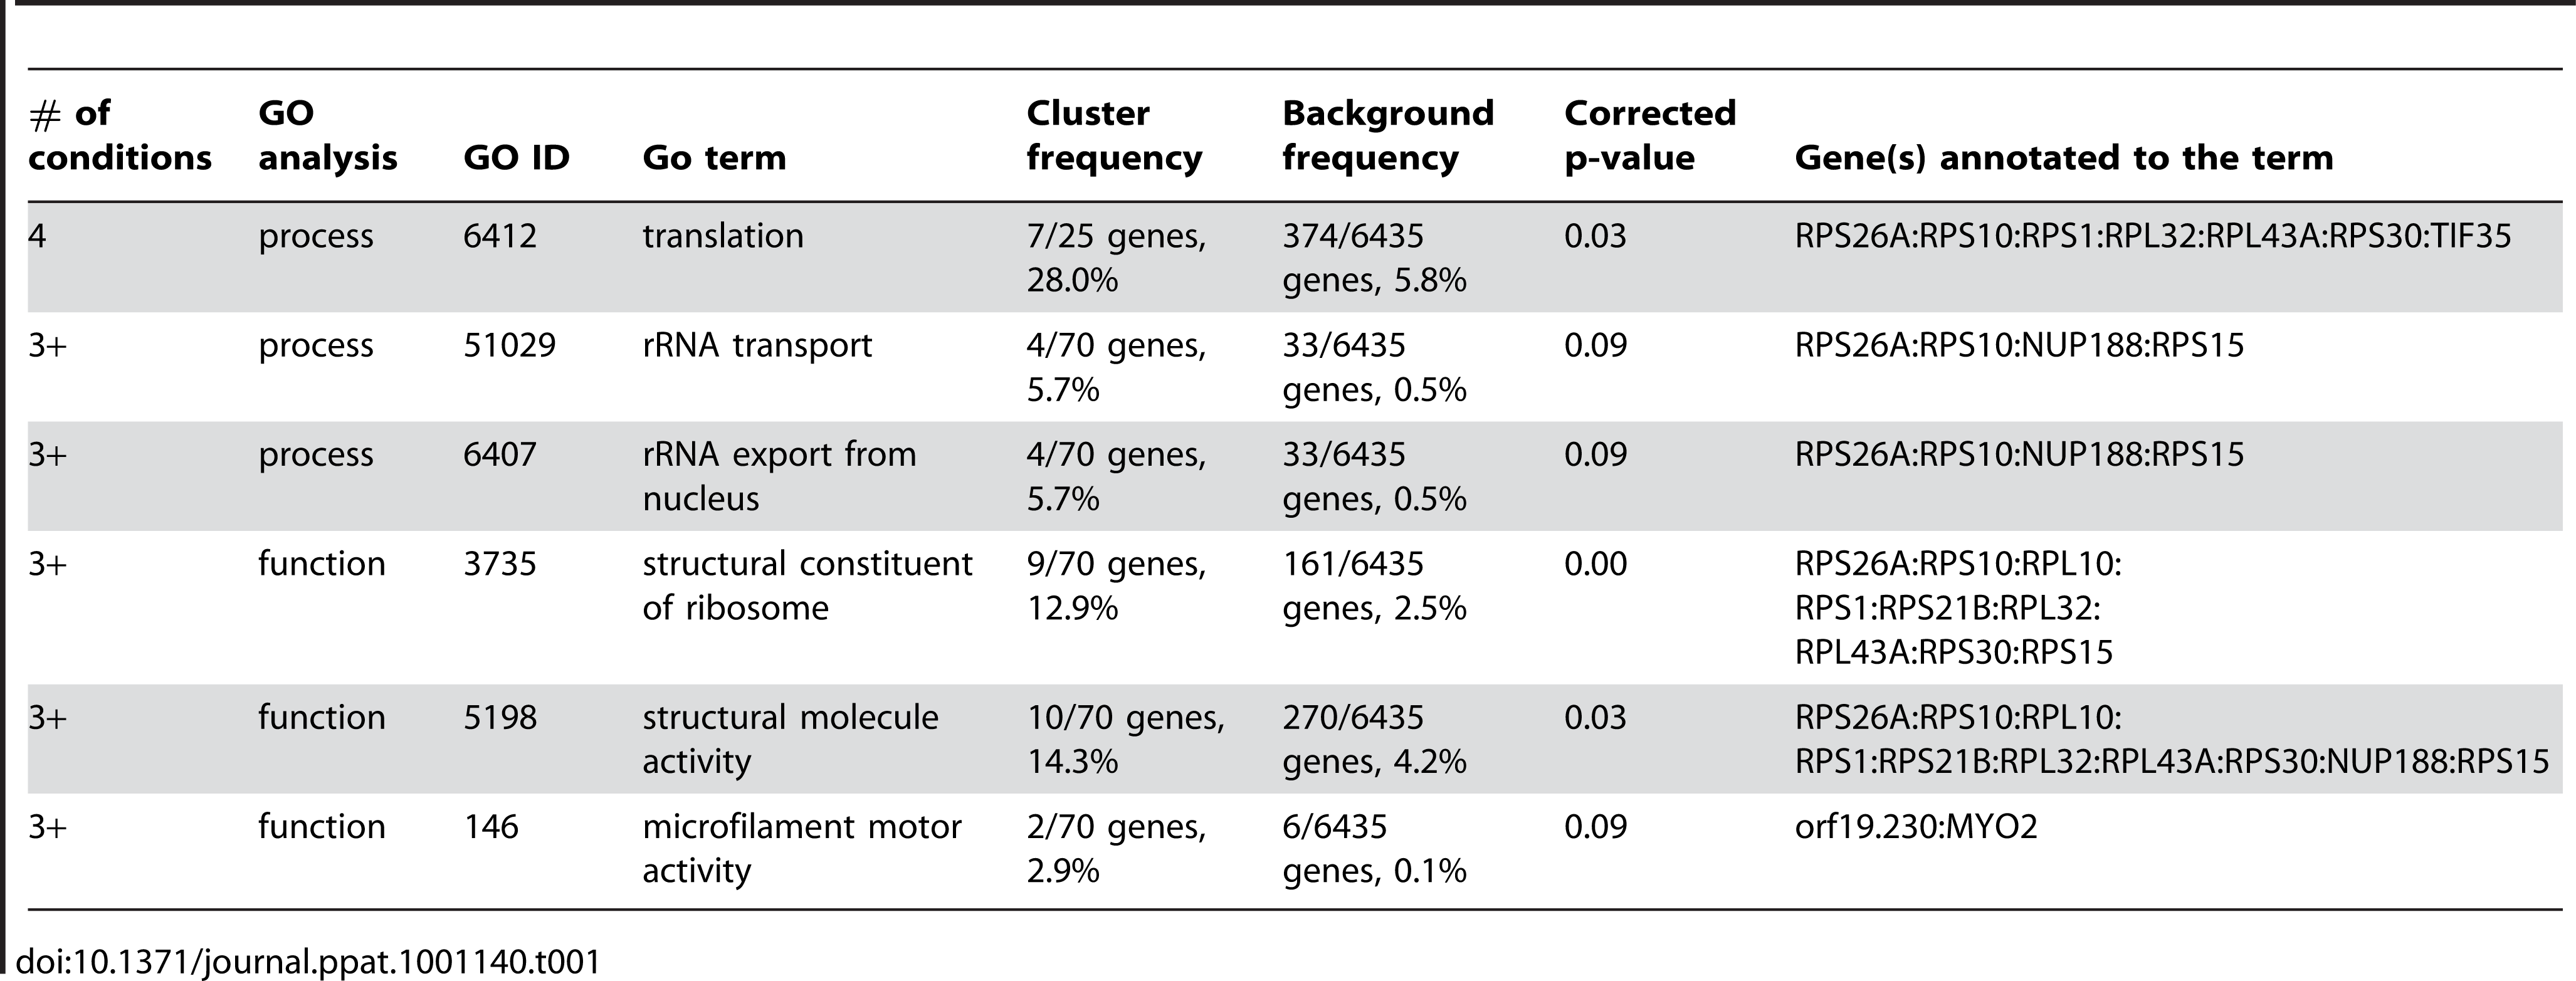 GO analysis of genes haploinsufficient in 3 or more media types.